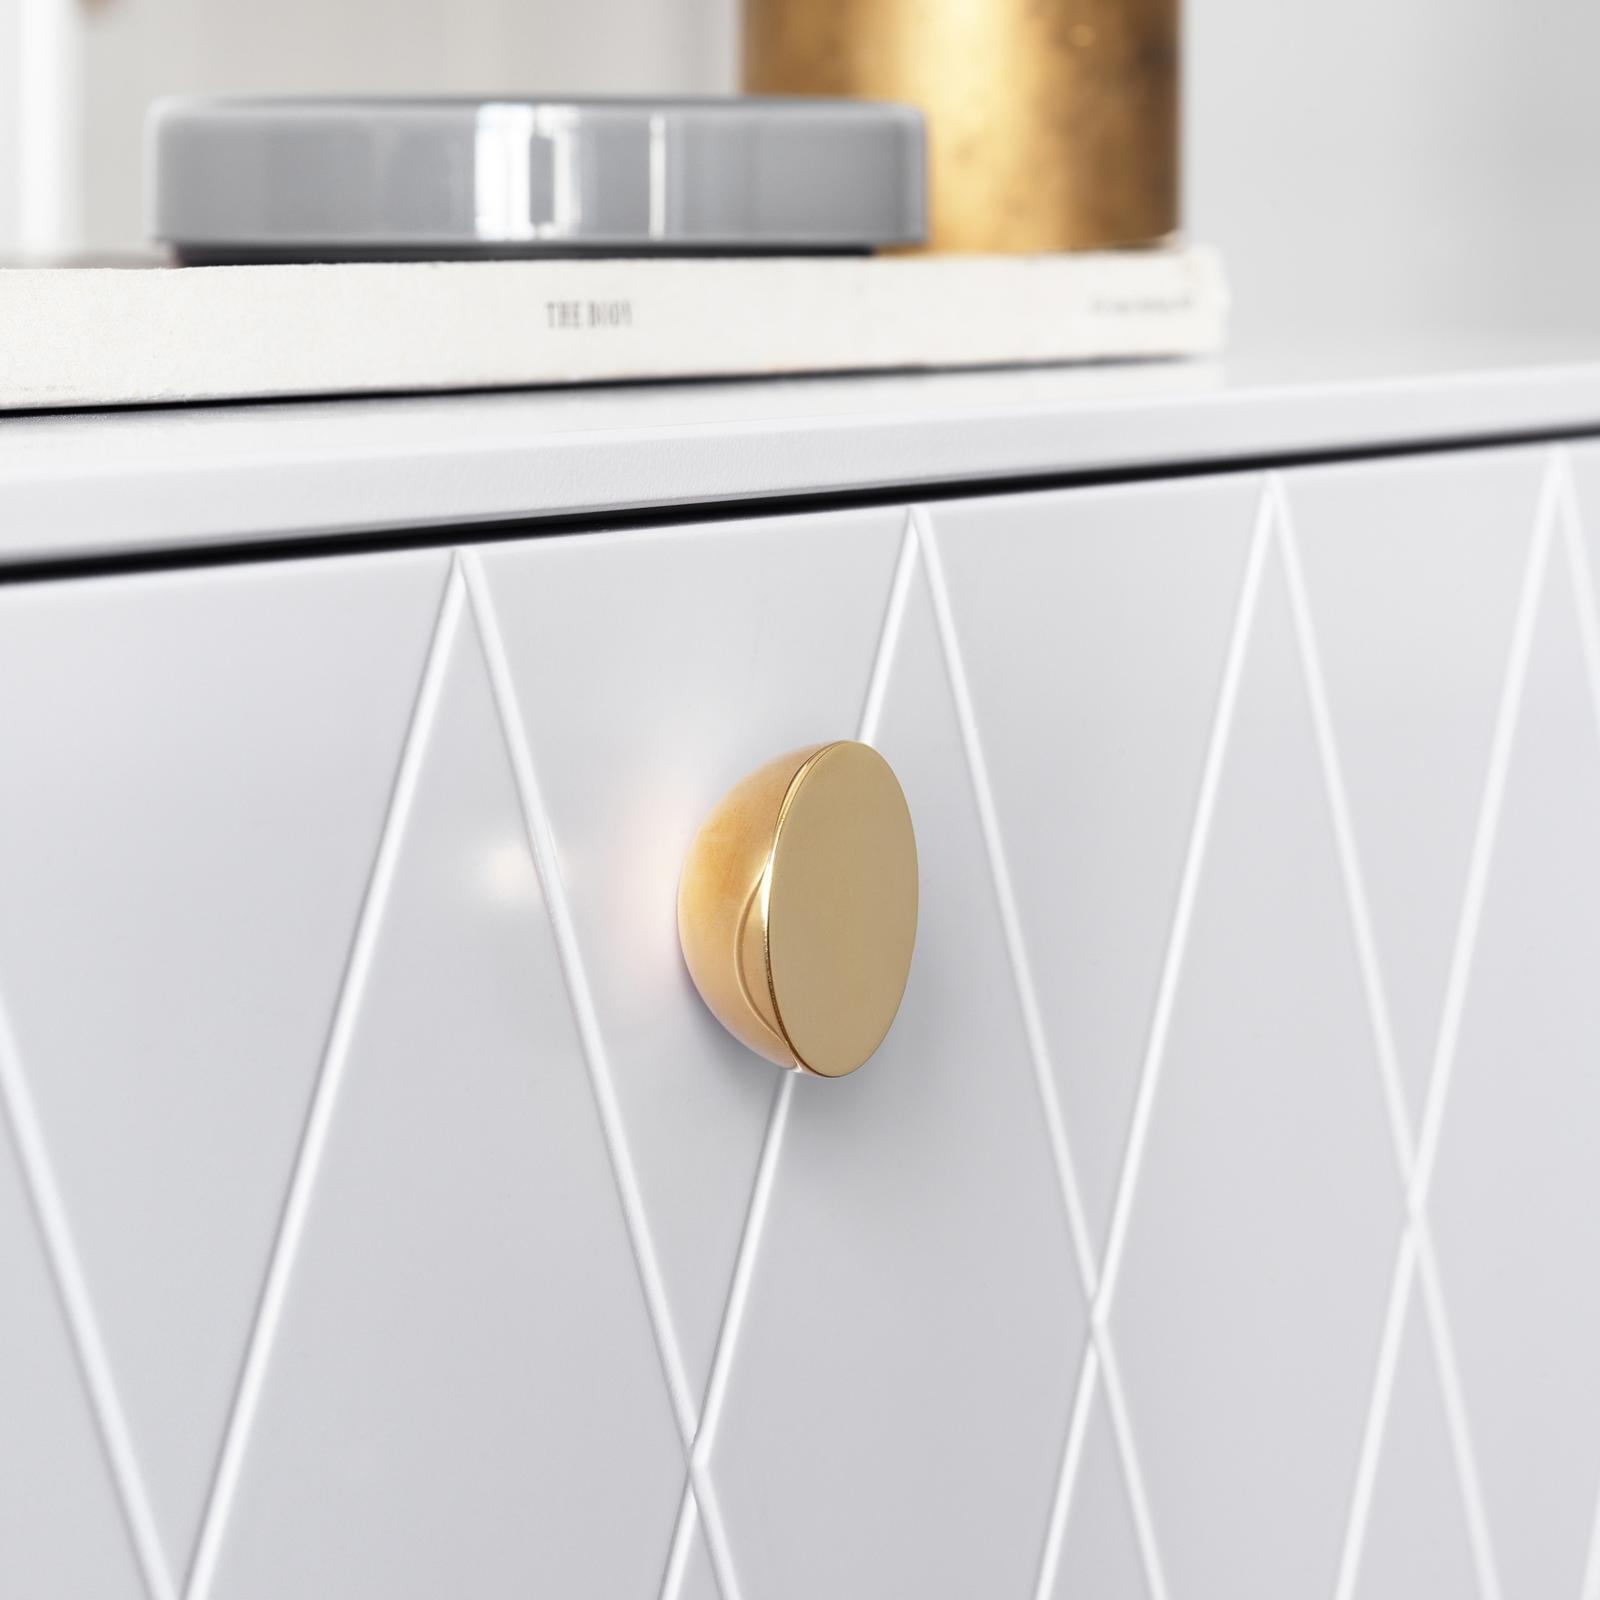 Knob in brass with hemisphere design on a light grey front from Superfront